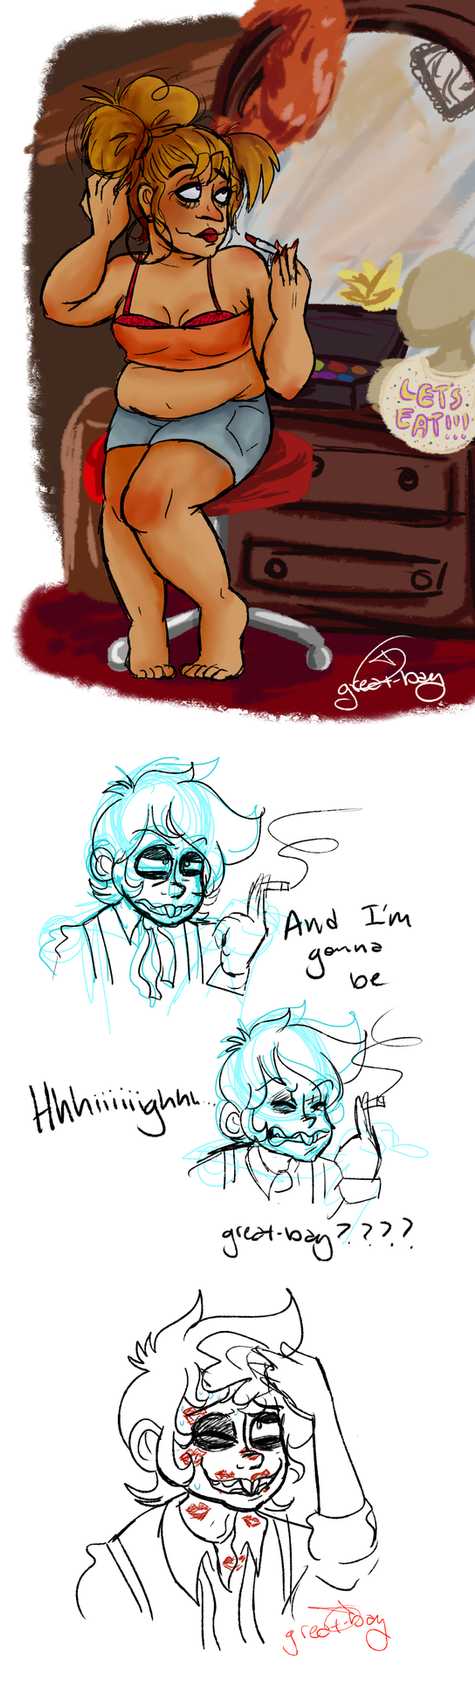 more fnaf dumps by YerBlues99